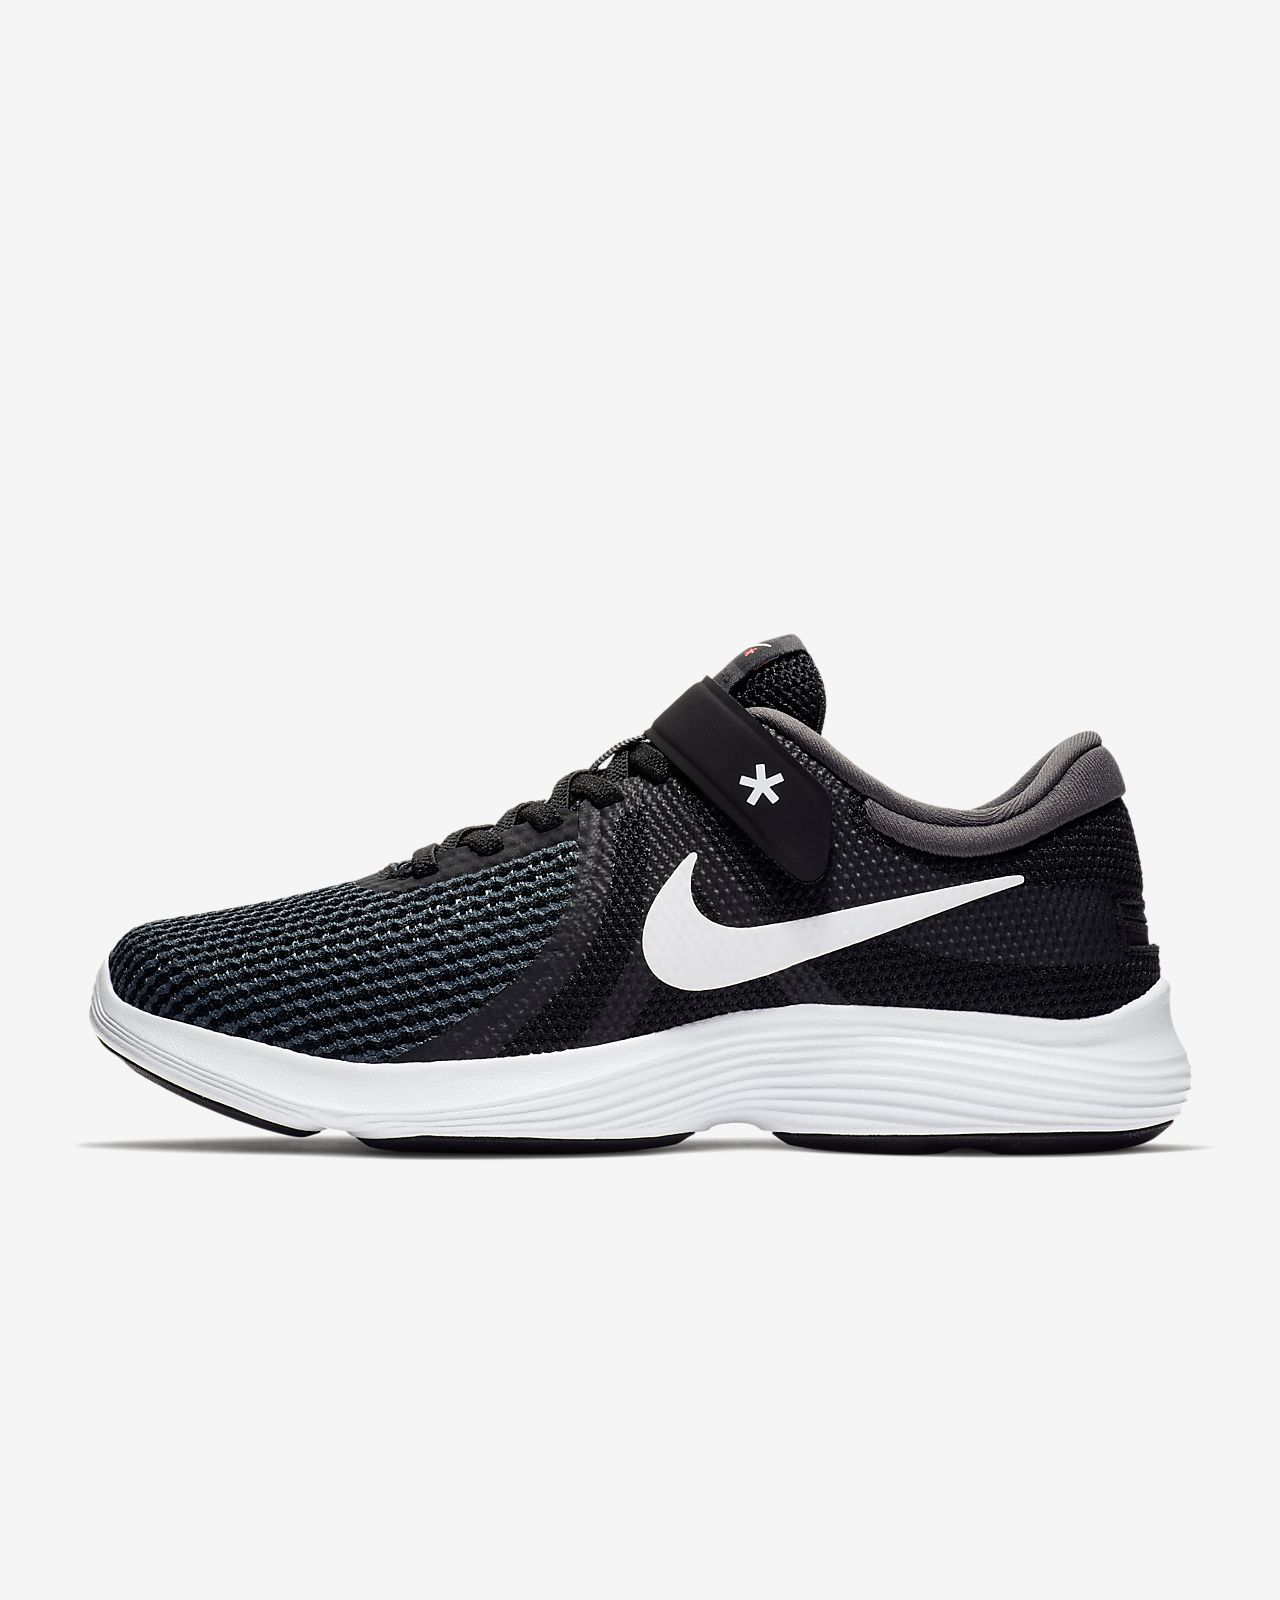 check out 22339 20950 Women s Running Shoe. Nike Revolution 4 FlyEase